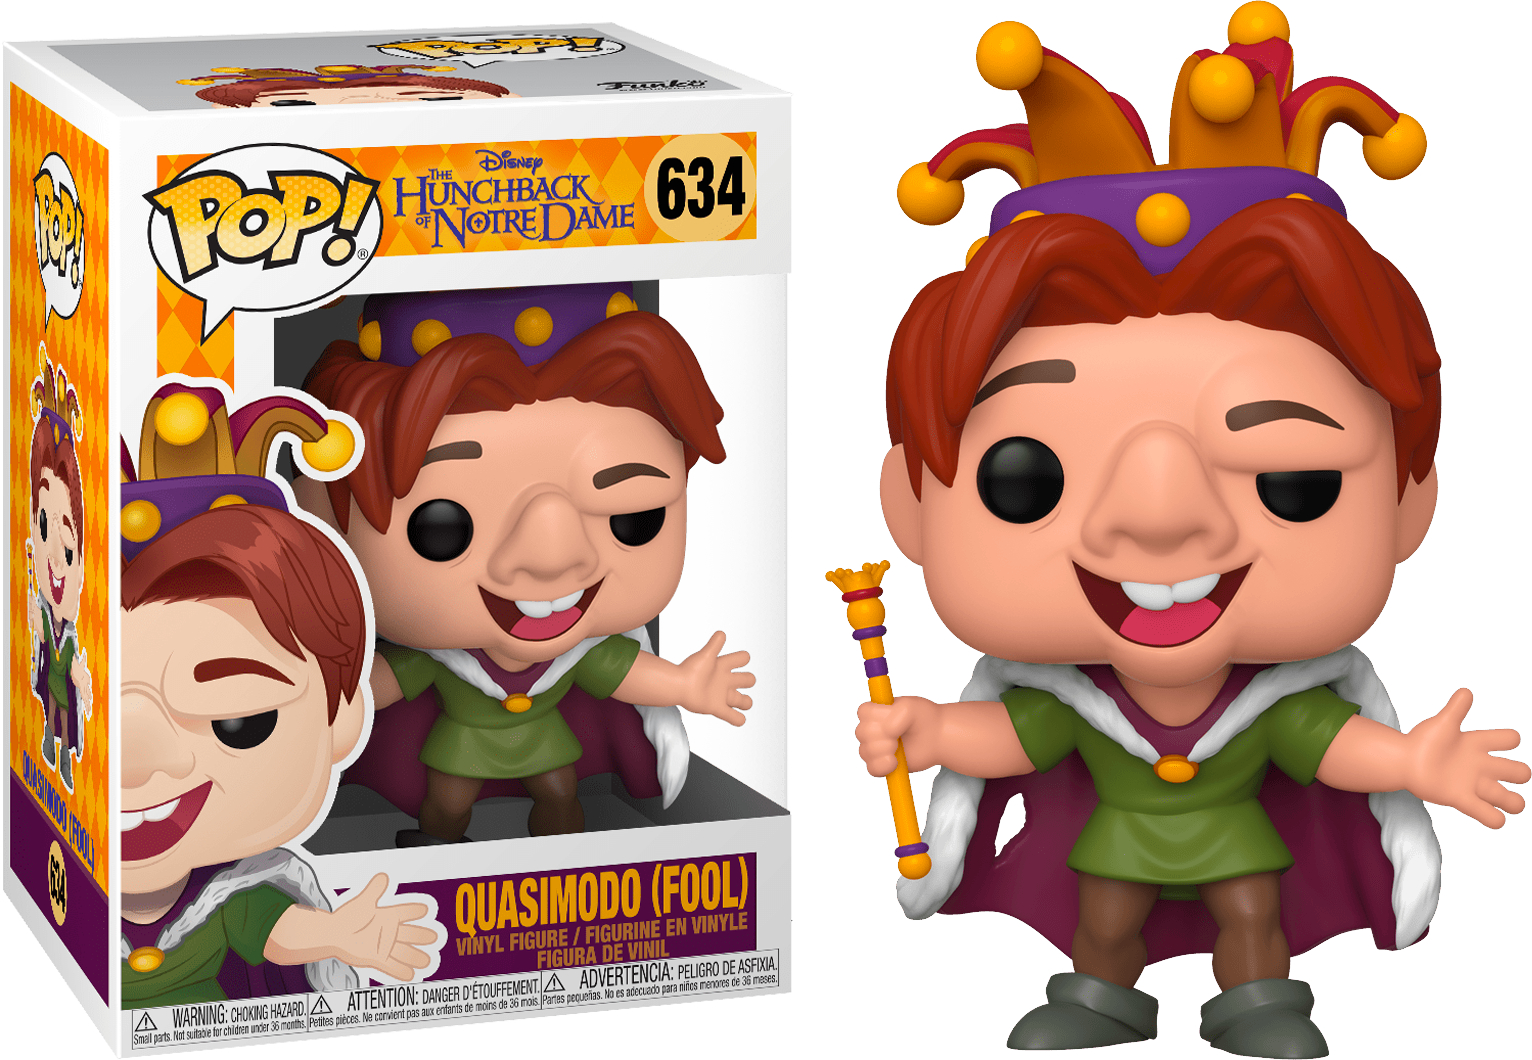 POP! DISNEY #??? PVC THE HUNCHBACK OF NOTRE DAME QUASIMODO FOOL